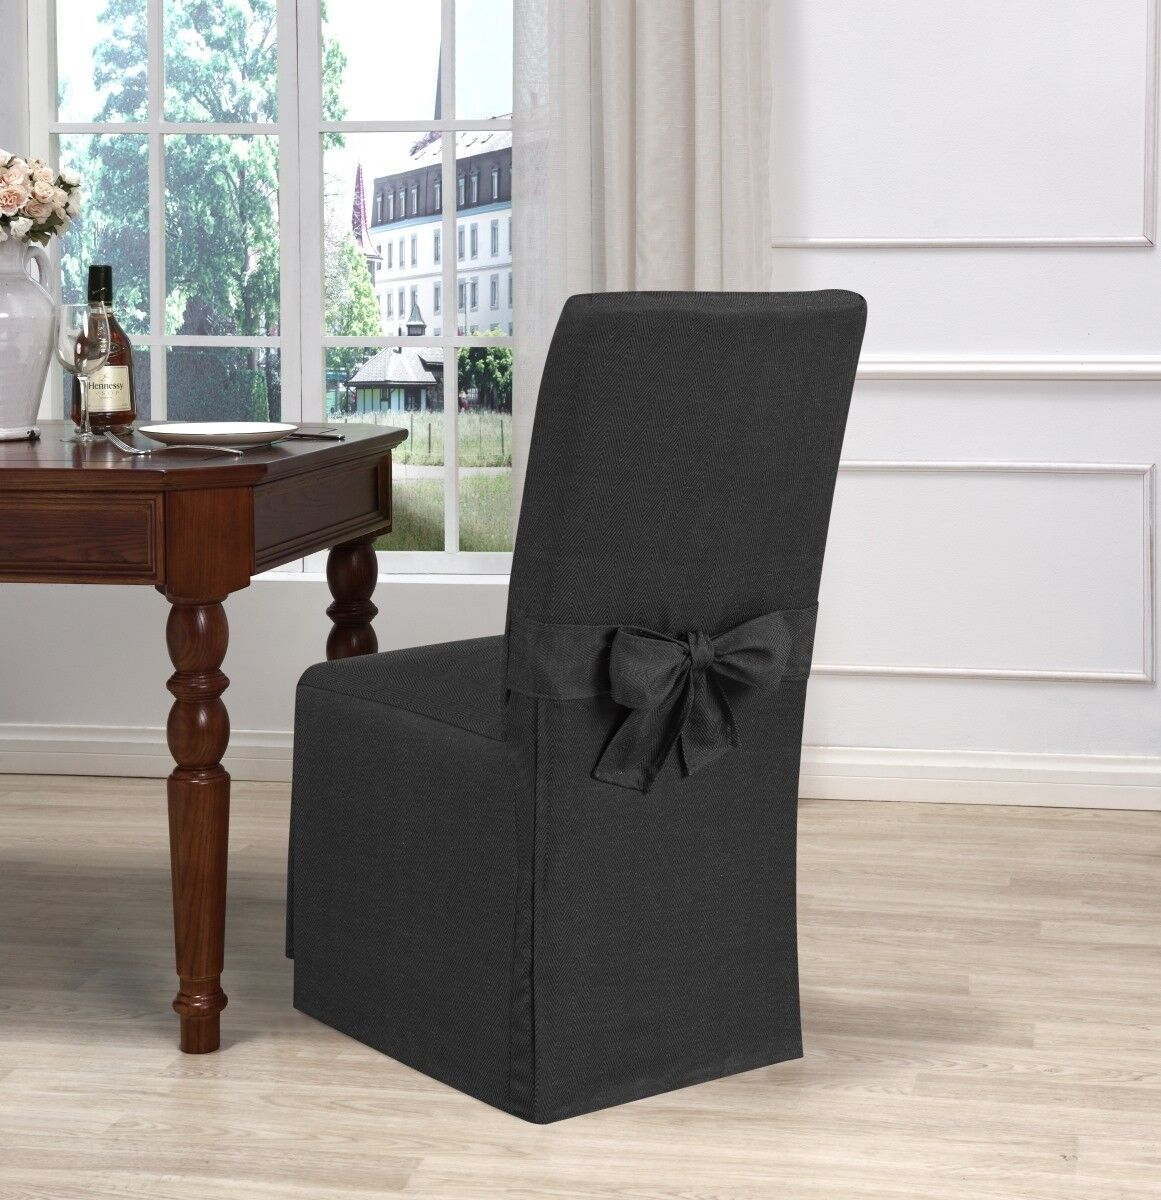 Details about Madison Kathy Ireland Garden Retreat Dining Room Chair  Slipcover Charcoal